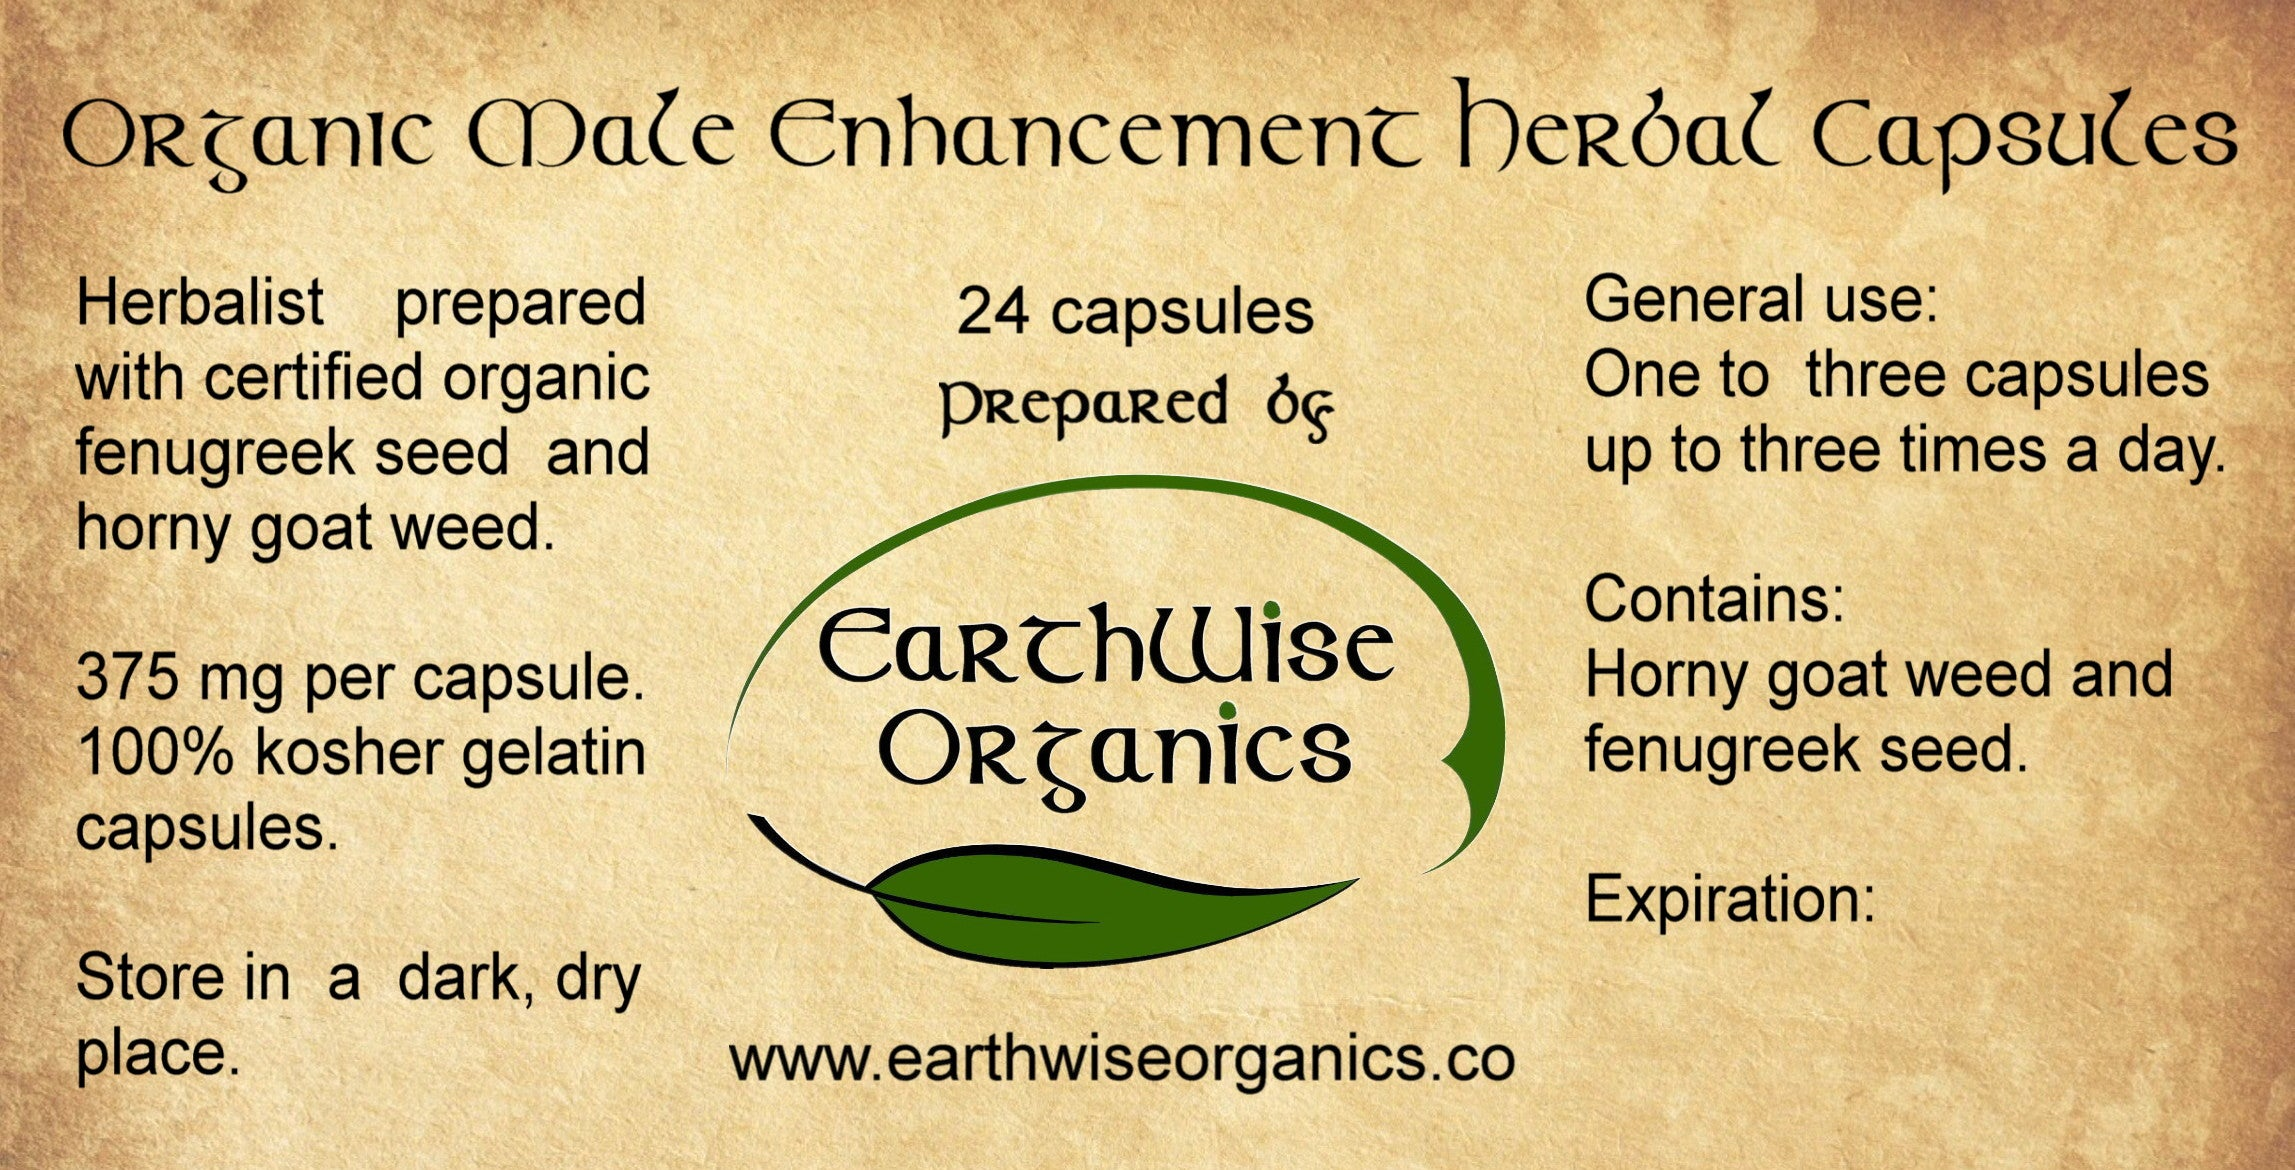 male enhancement organic herbal capsules